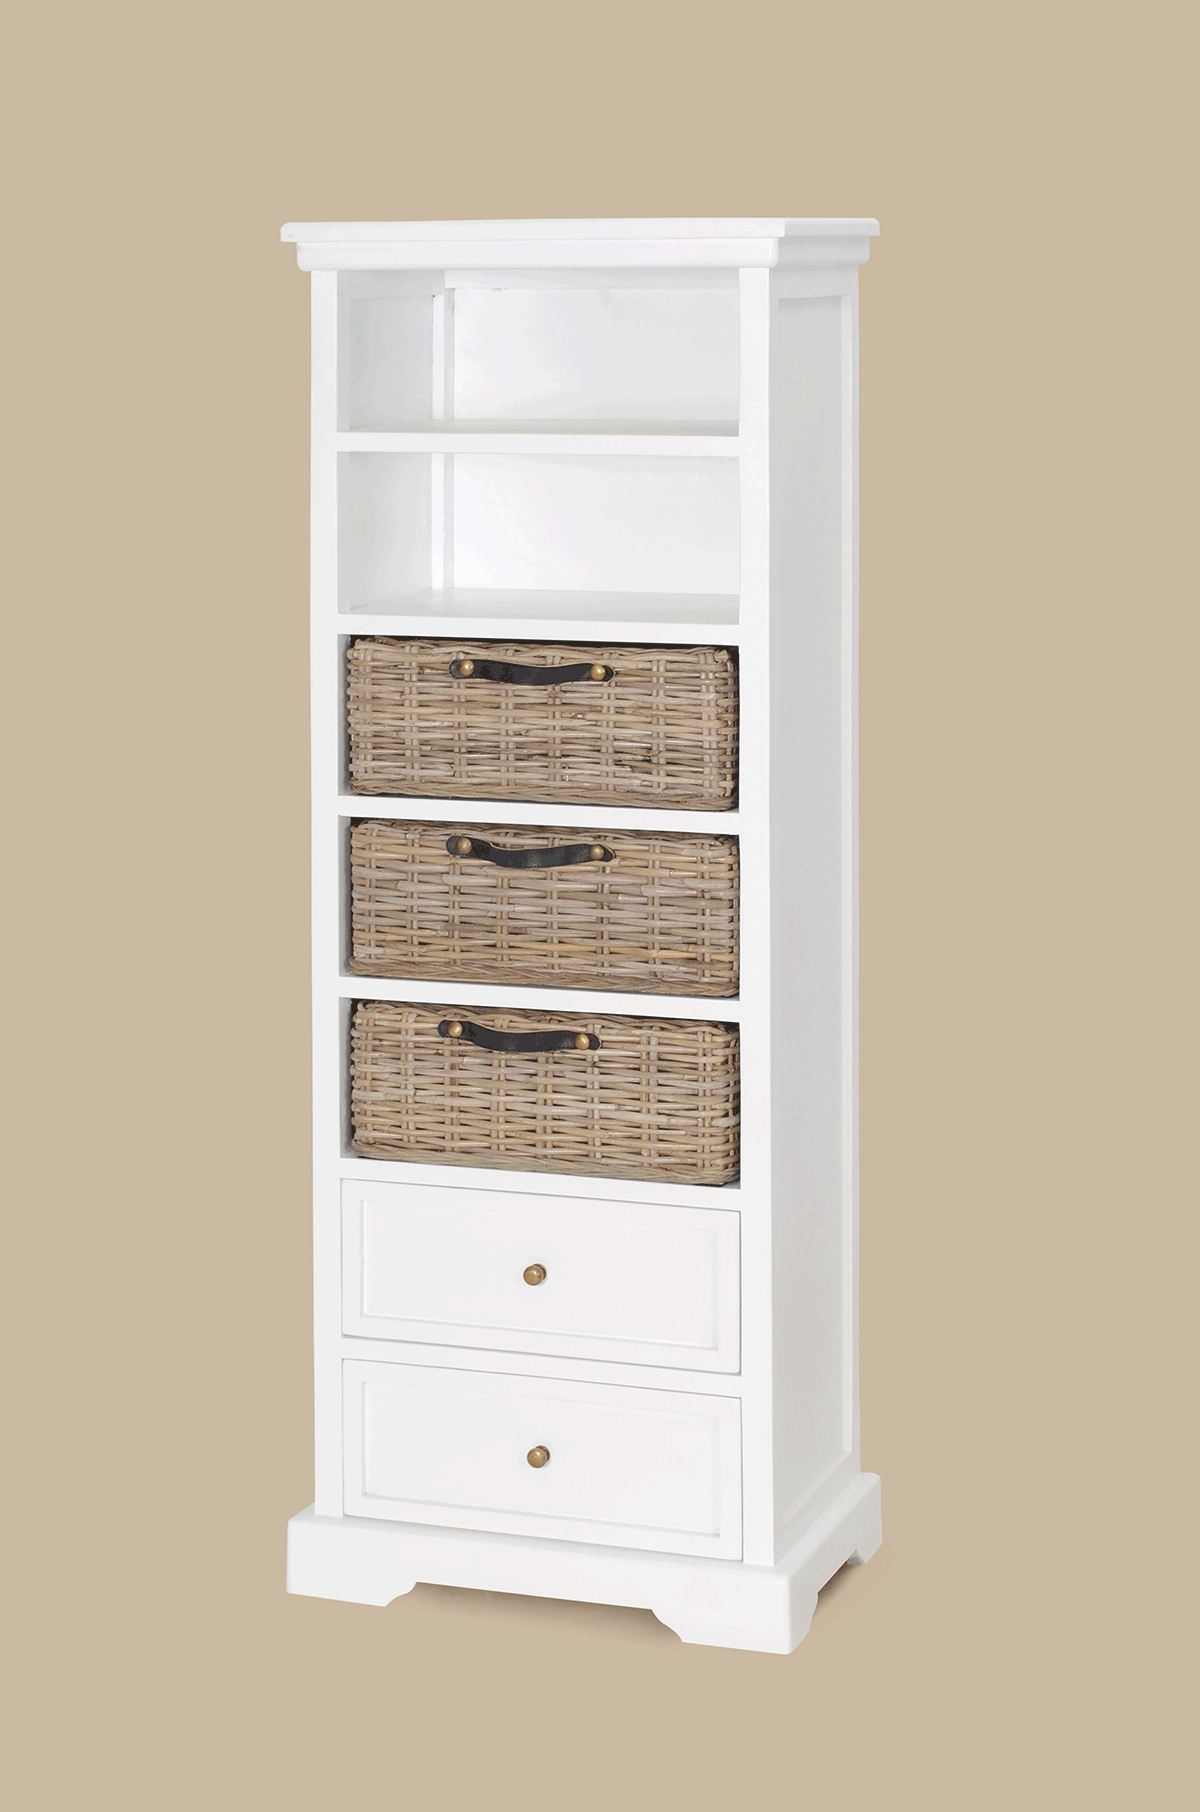 Newest Tall White Bookcases In Importance Of Having Bookcase With Drawers – Darbylanefurniture (View 8 of 15)